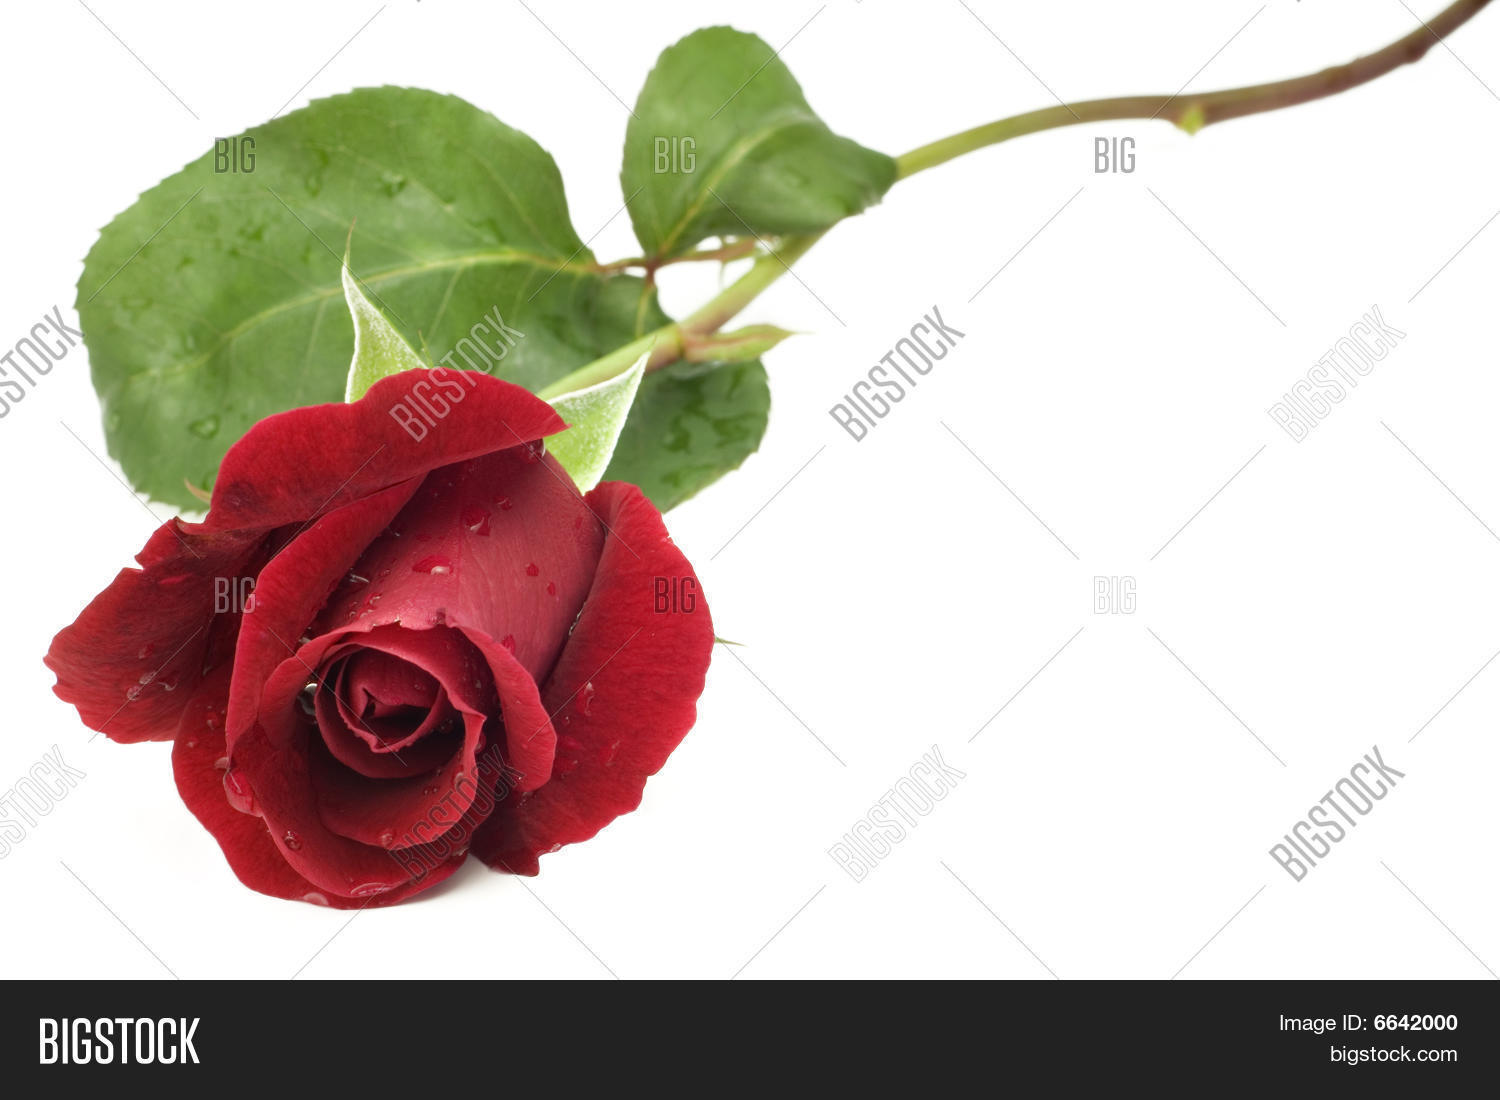 1500x1100 Long Stem Roses Images, Illustrations, Vectors